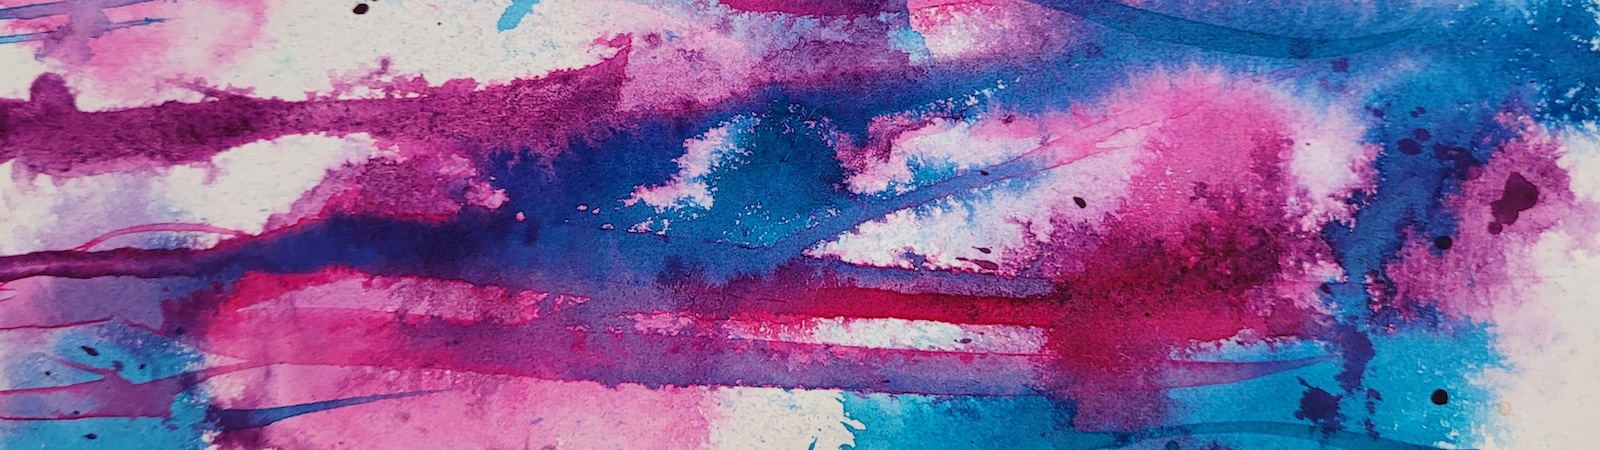 Blue and Pink abstract watercolor background